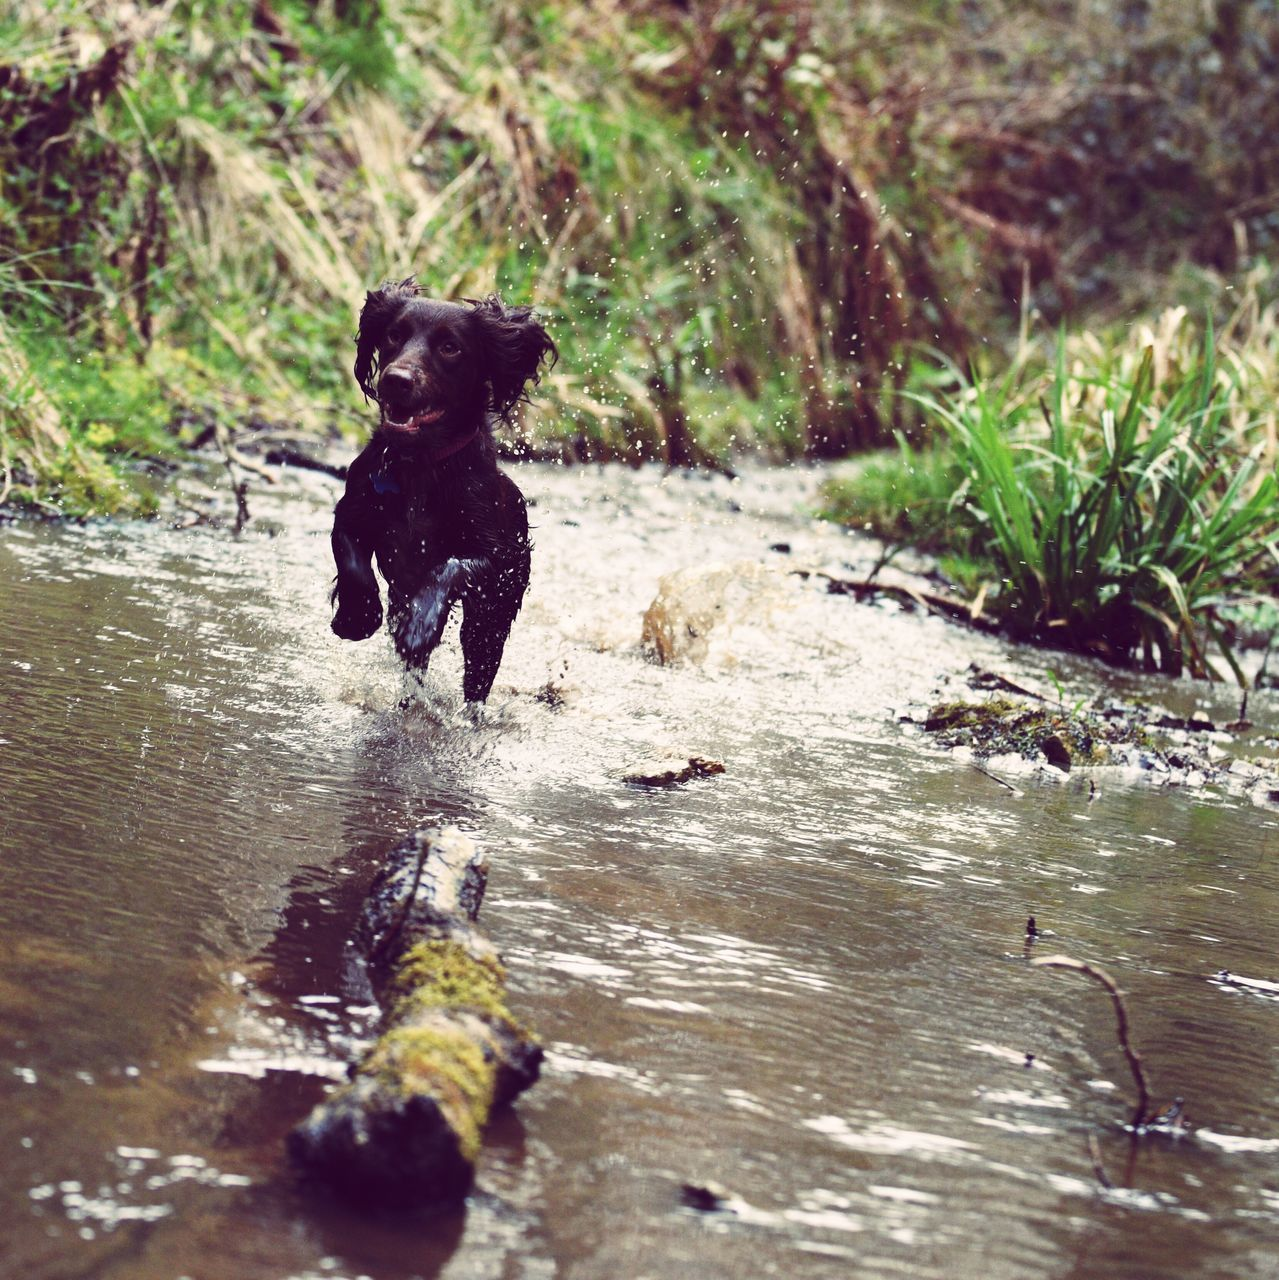 dog, pets, wet, water, running, day, domestic animals, animal themes, one animal, outdoors, motion, mammal, playing, full length, nature, childhood, no people